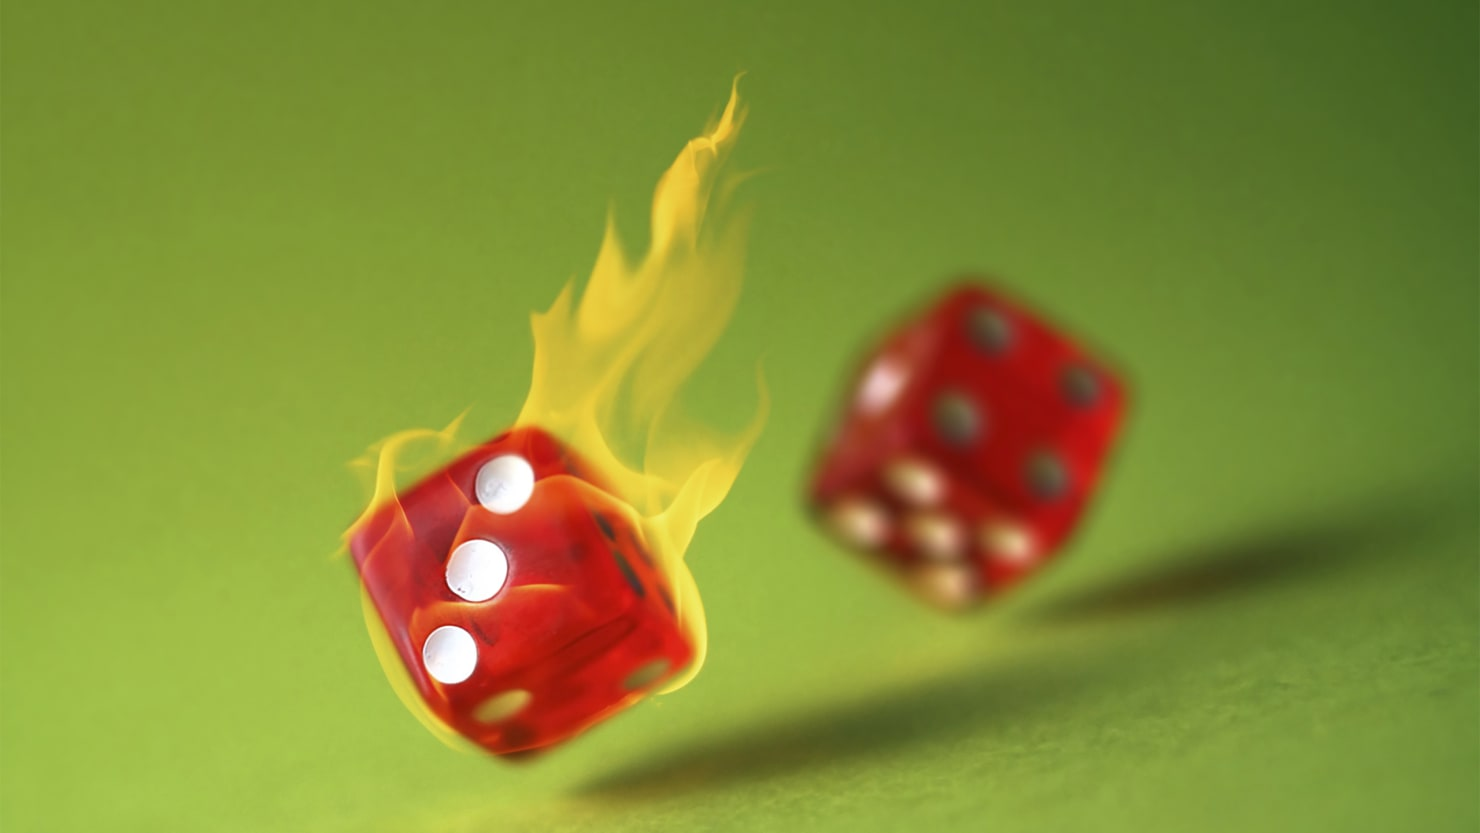 How to Beat the House: the Science Behind Gamblers' Hot Streaks